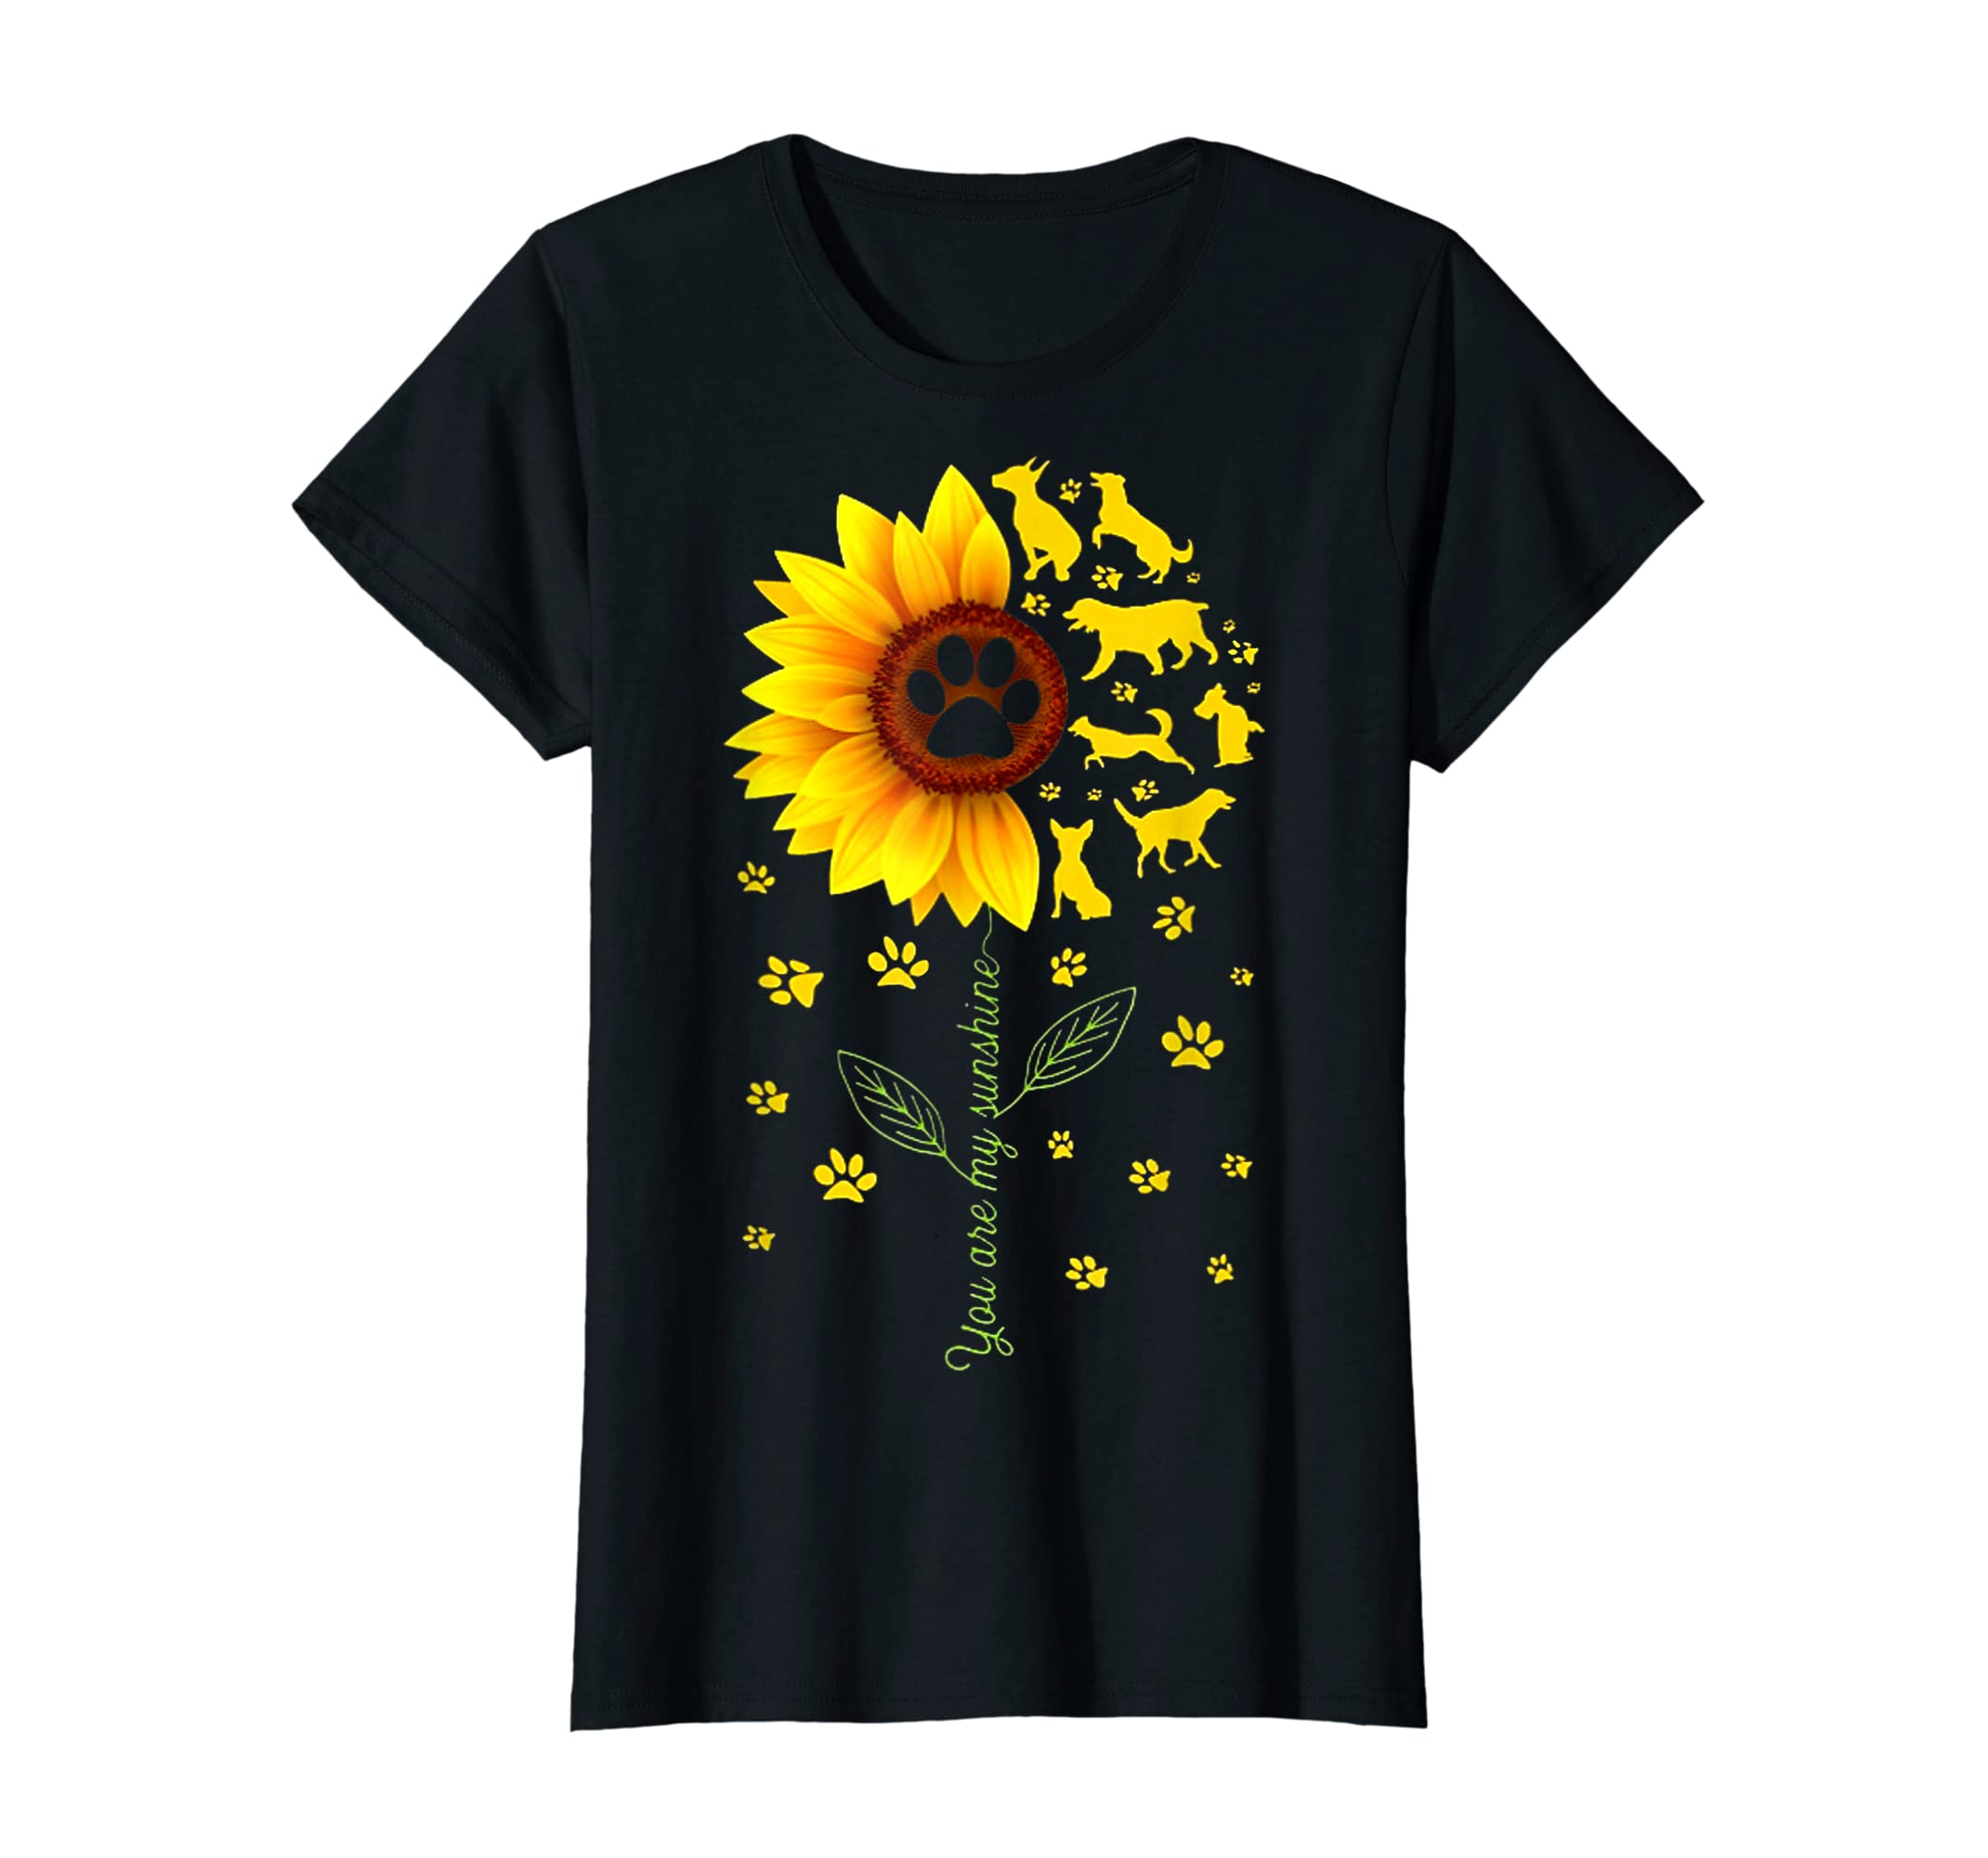 You are my Sunshine t-shirt-Women's T-Shirt-Black